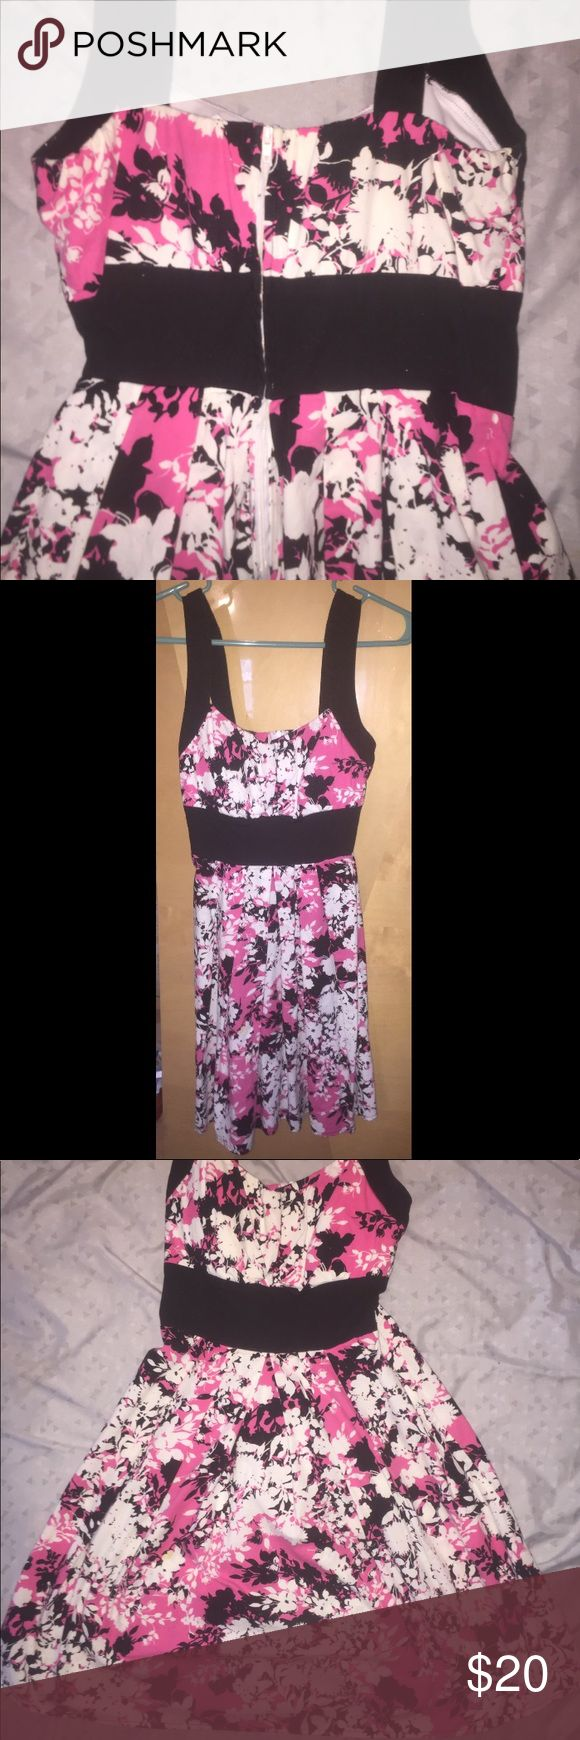 Pink floral dress Adorable dress - perfect for special occasions, church, or date night! Pair it with a pair of heels to dress it up or black sandals to dress it down. Size 5/6, perfect condition B. Smart Dresses Mini